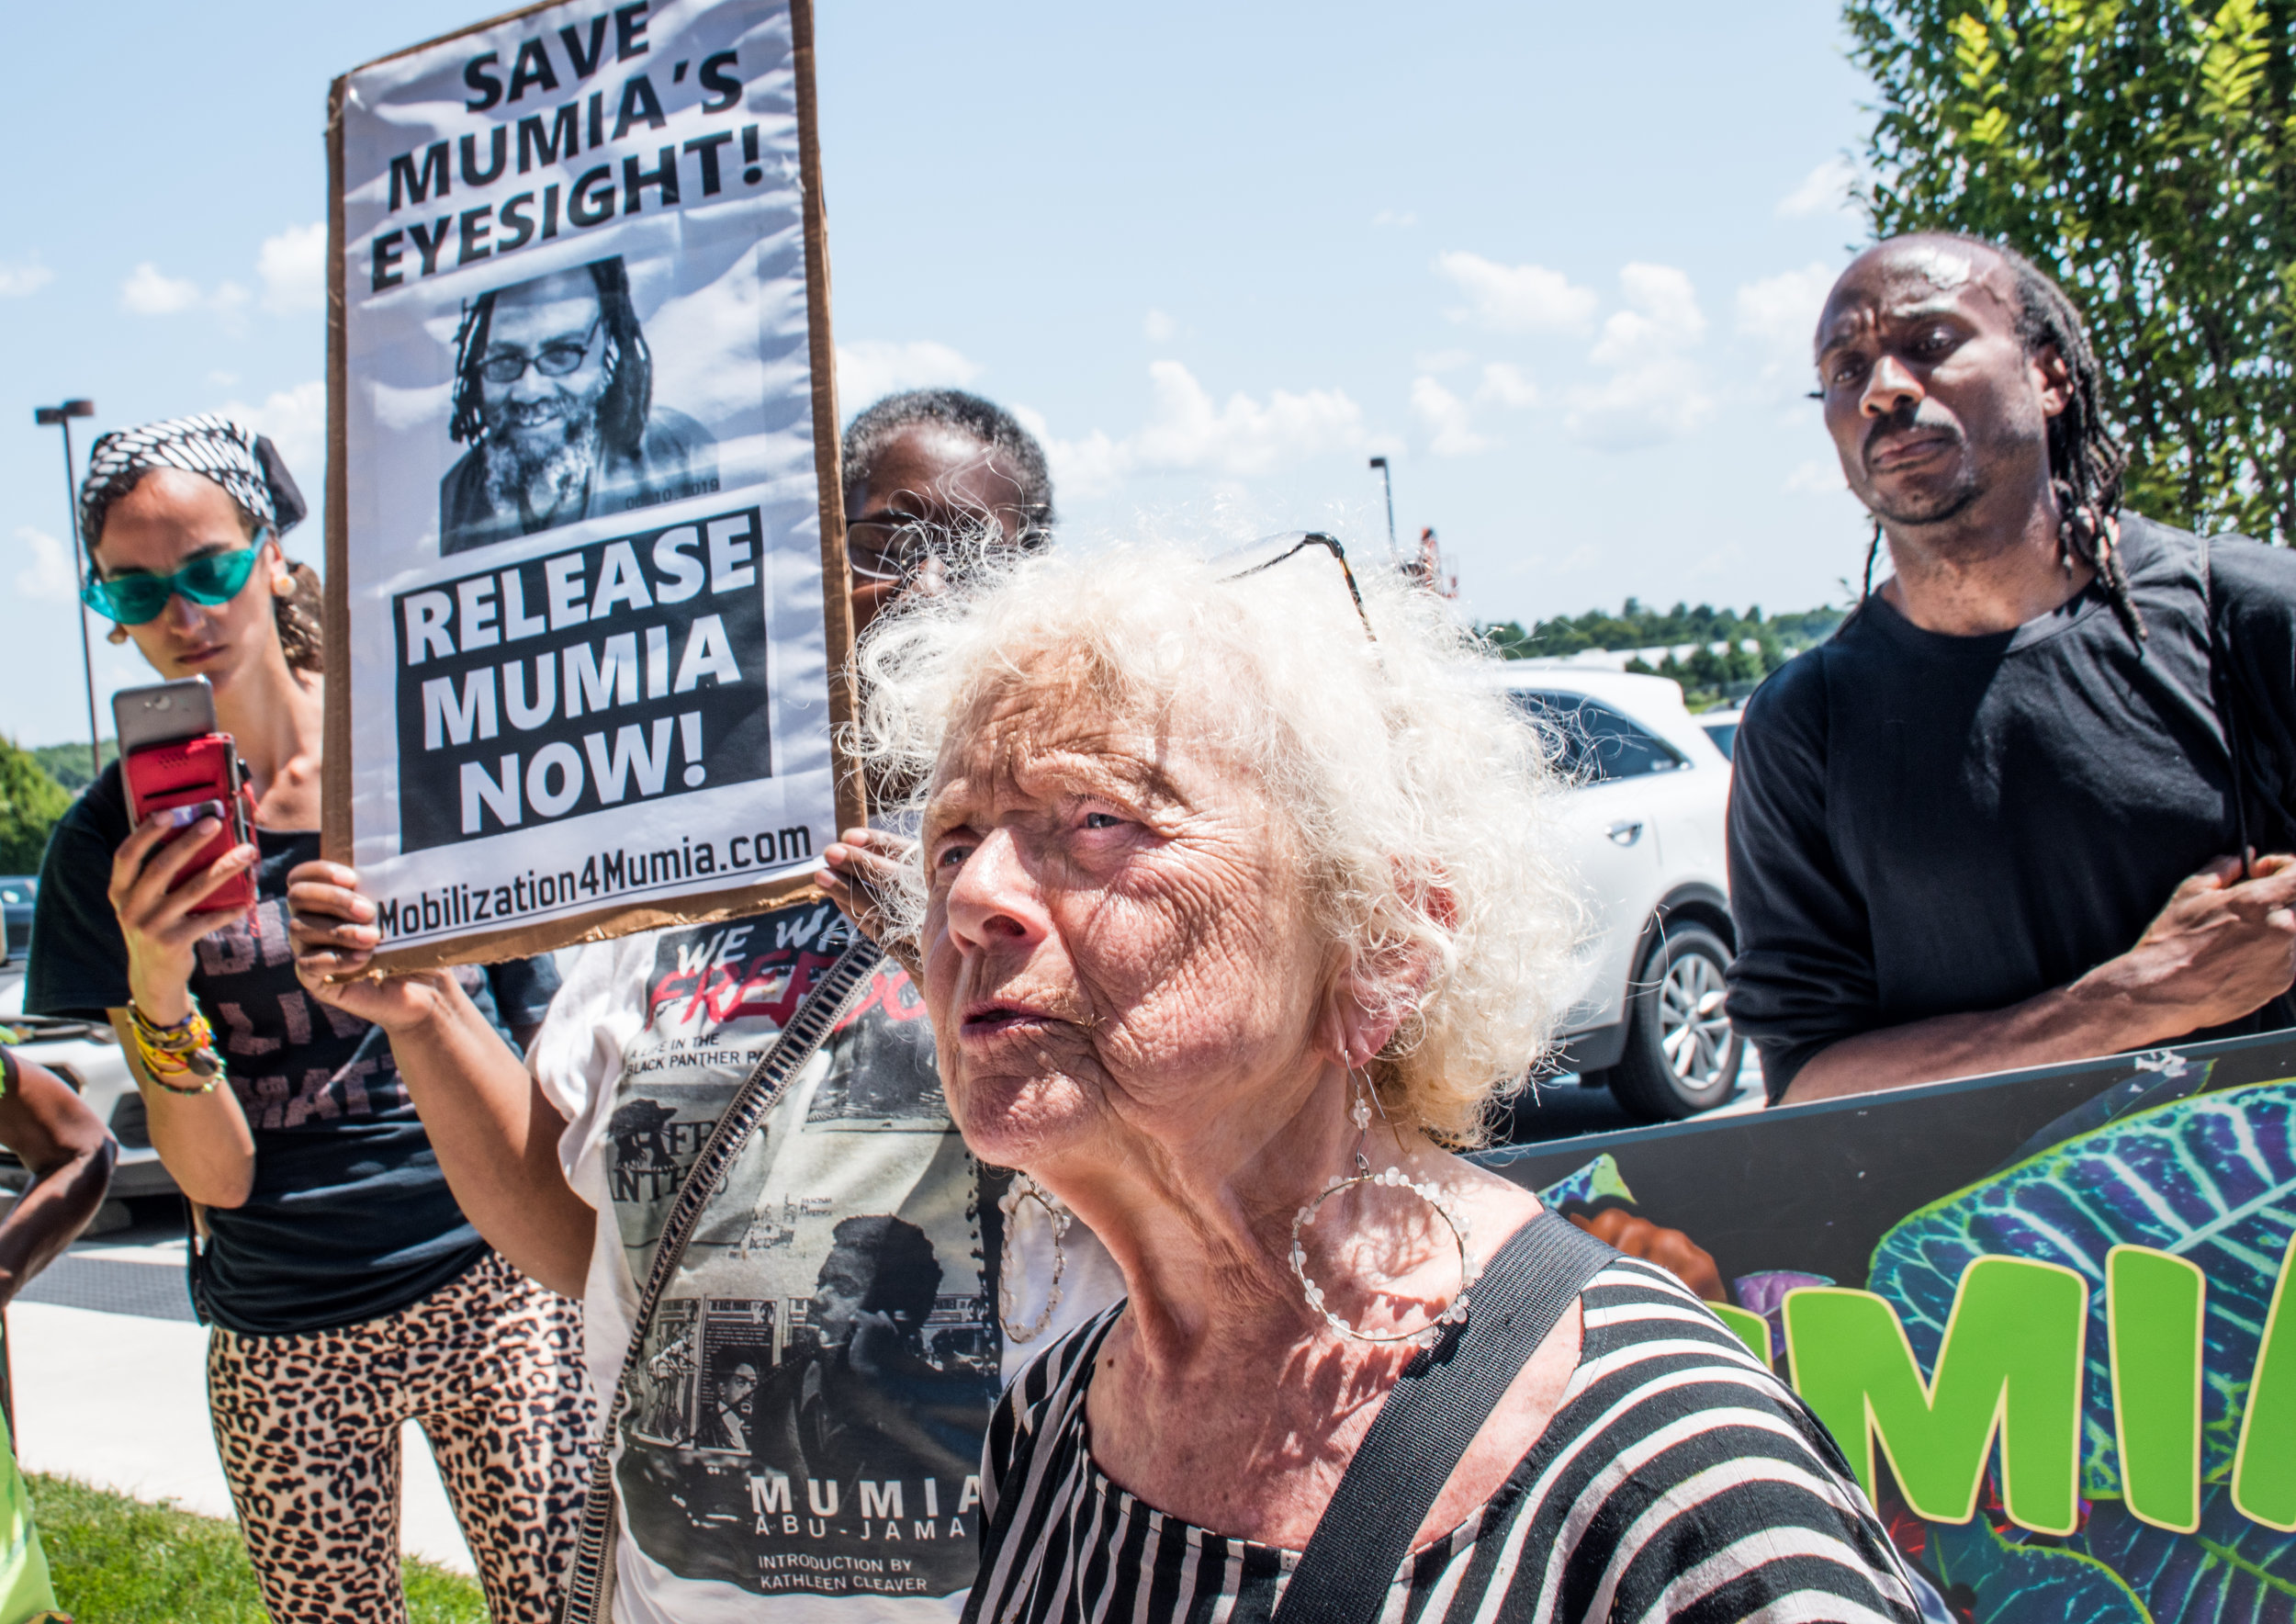 Part of group of Mumia supporters who traveled to Mechanicsburg, PA to deliver 3,000 petitions to the PA DOC on July 24, 2019.  Photo credit: Joe Piette